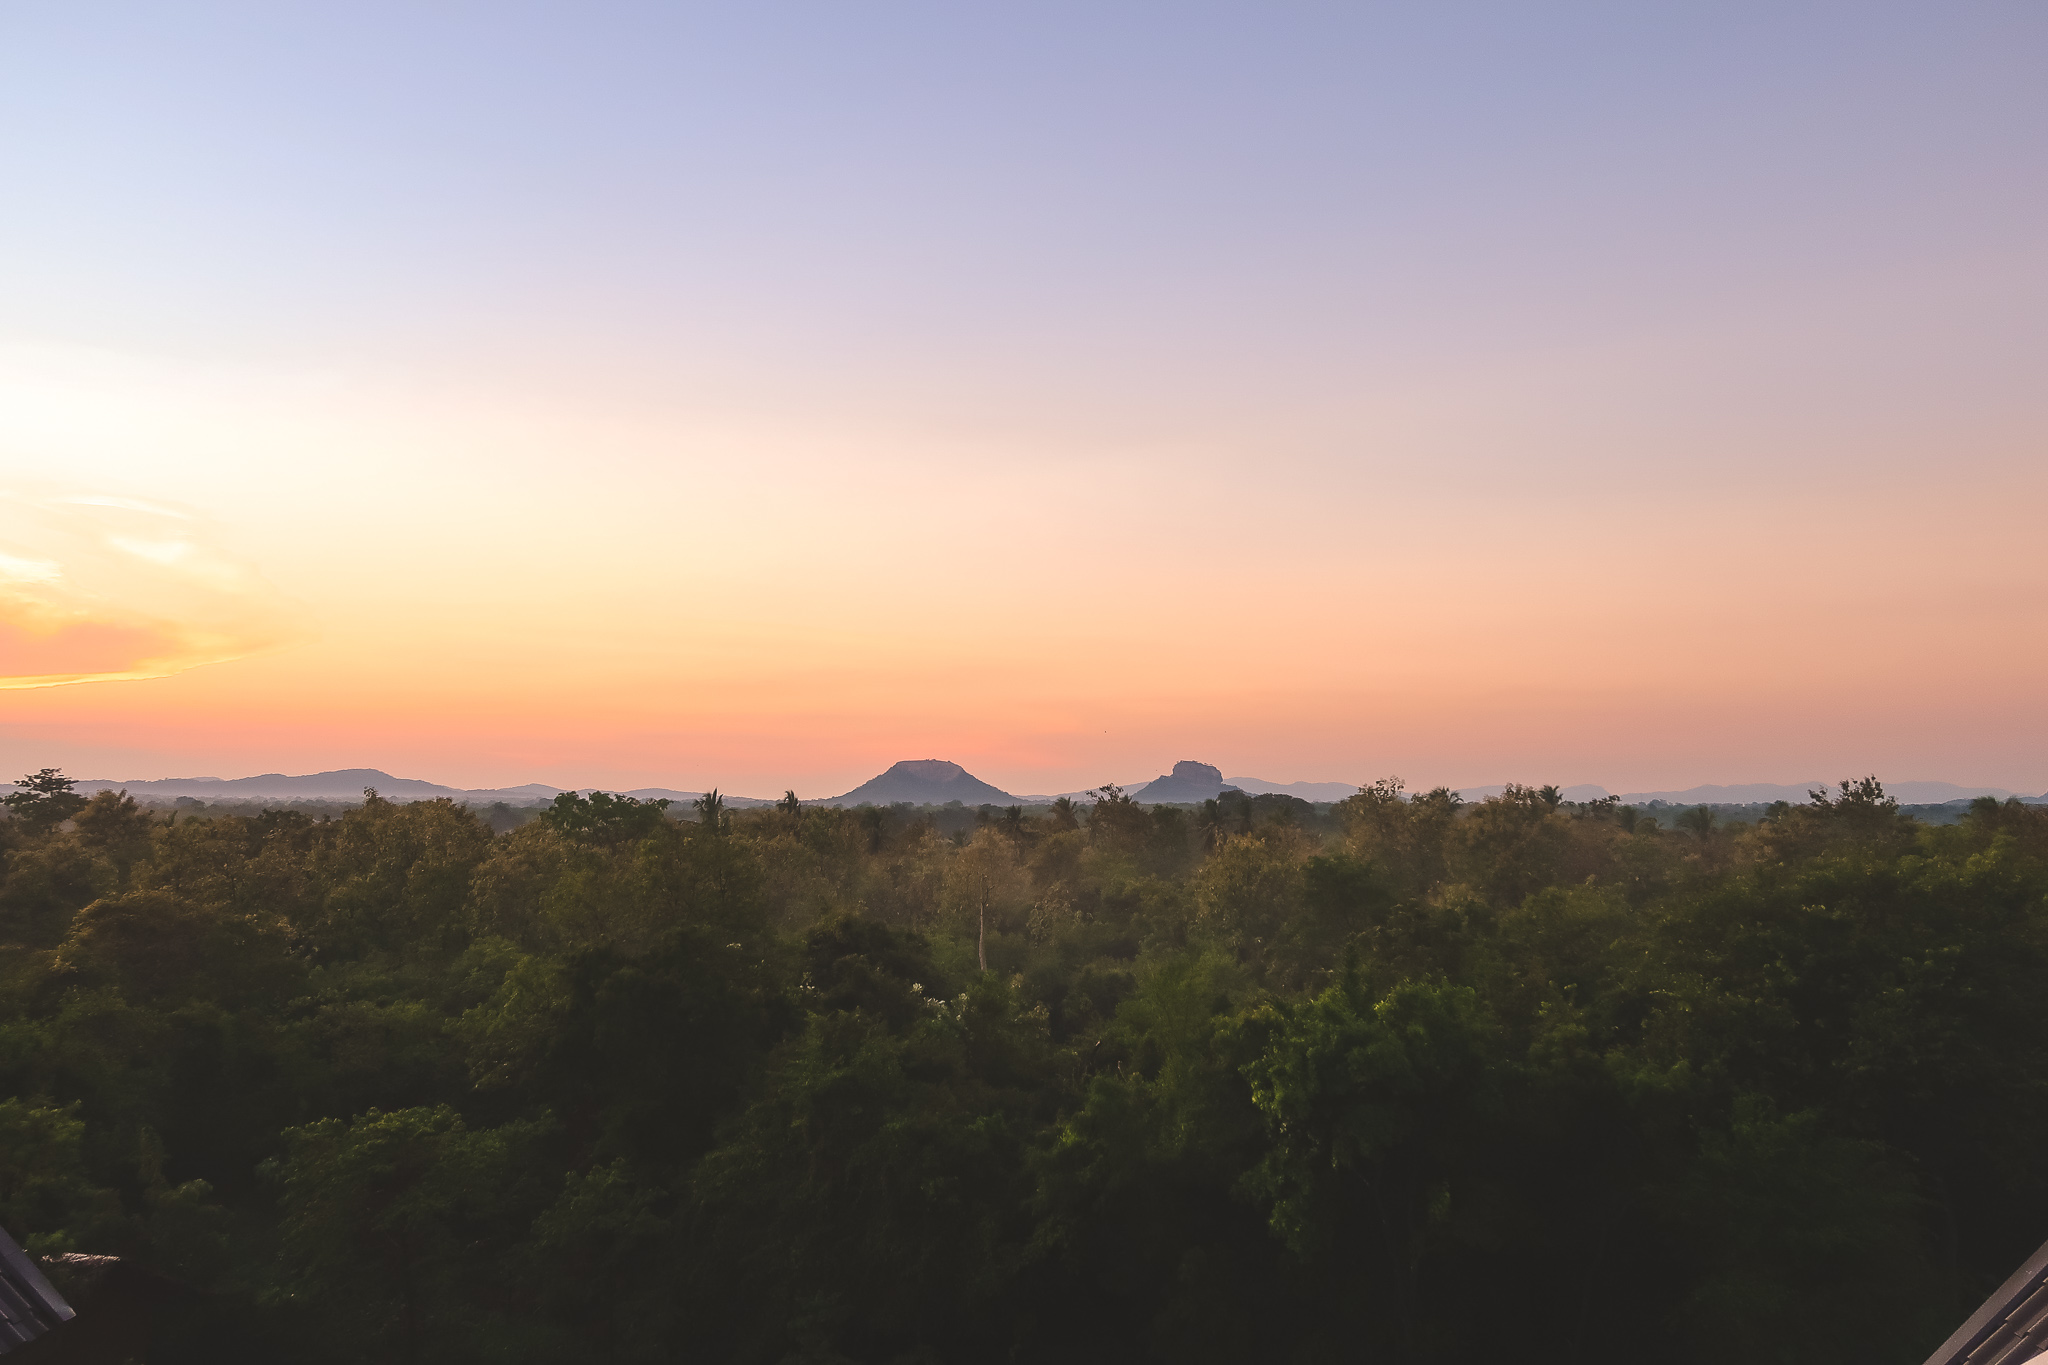 Morning view of Sigiriya Rock